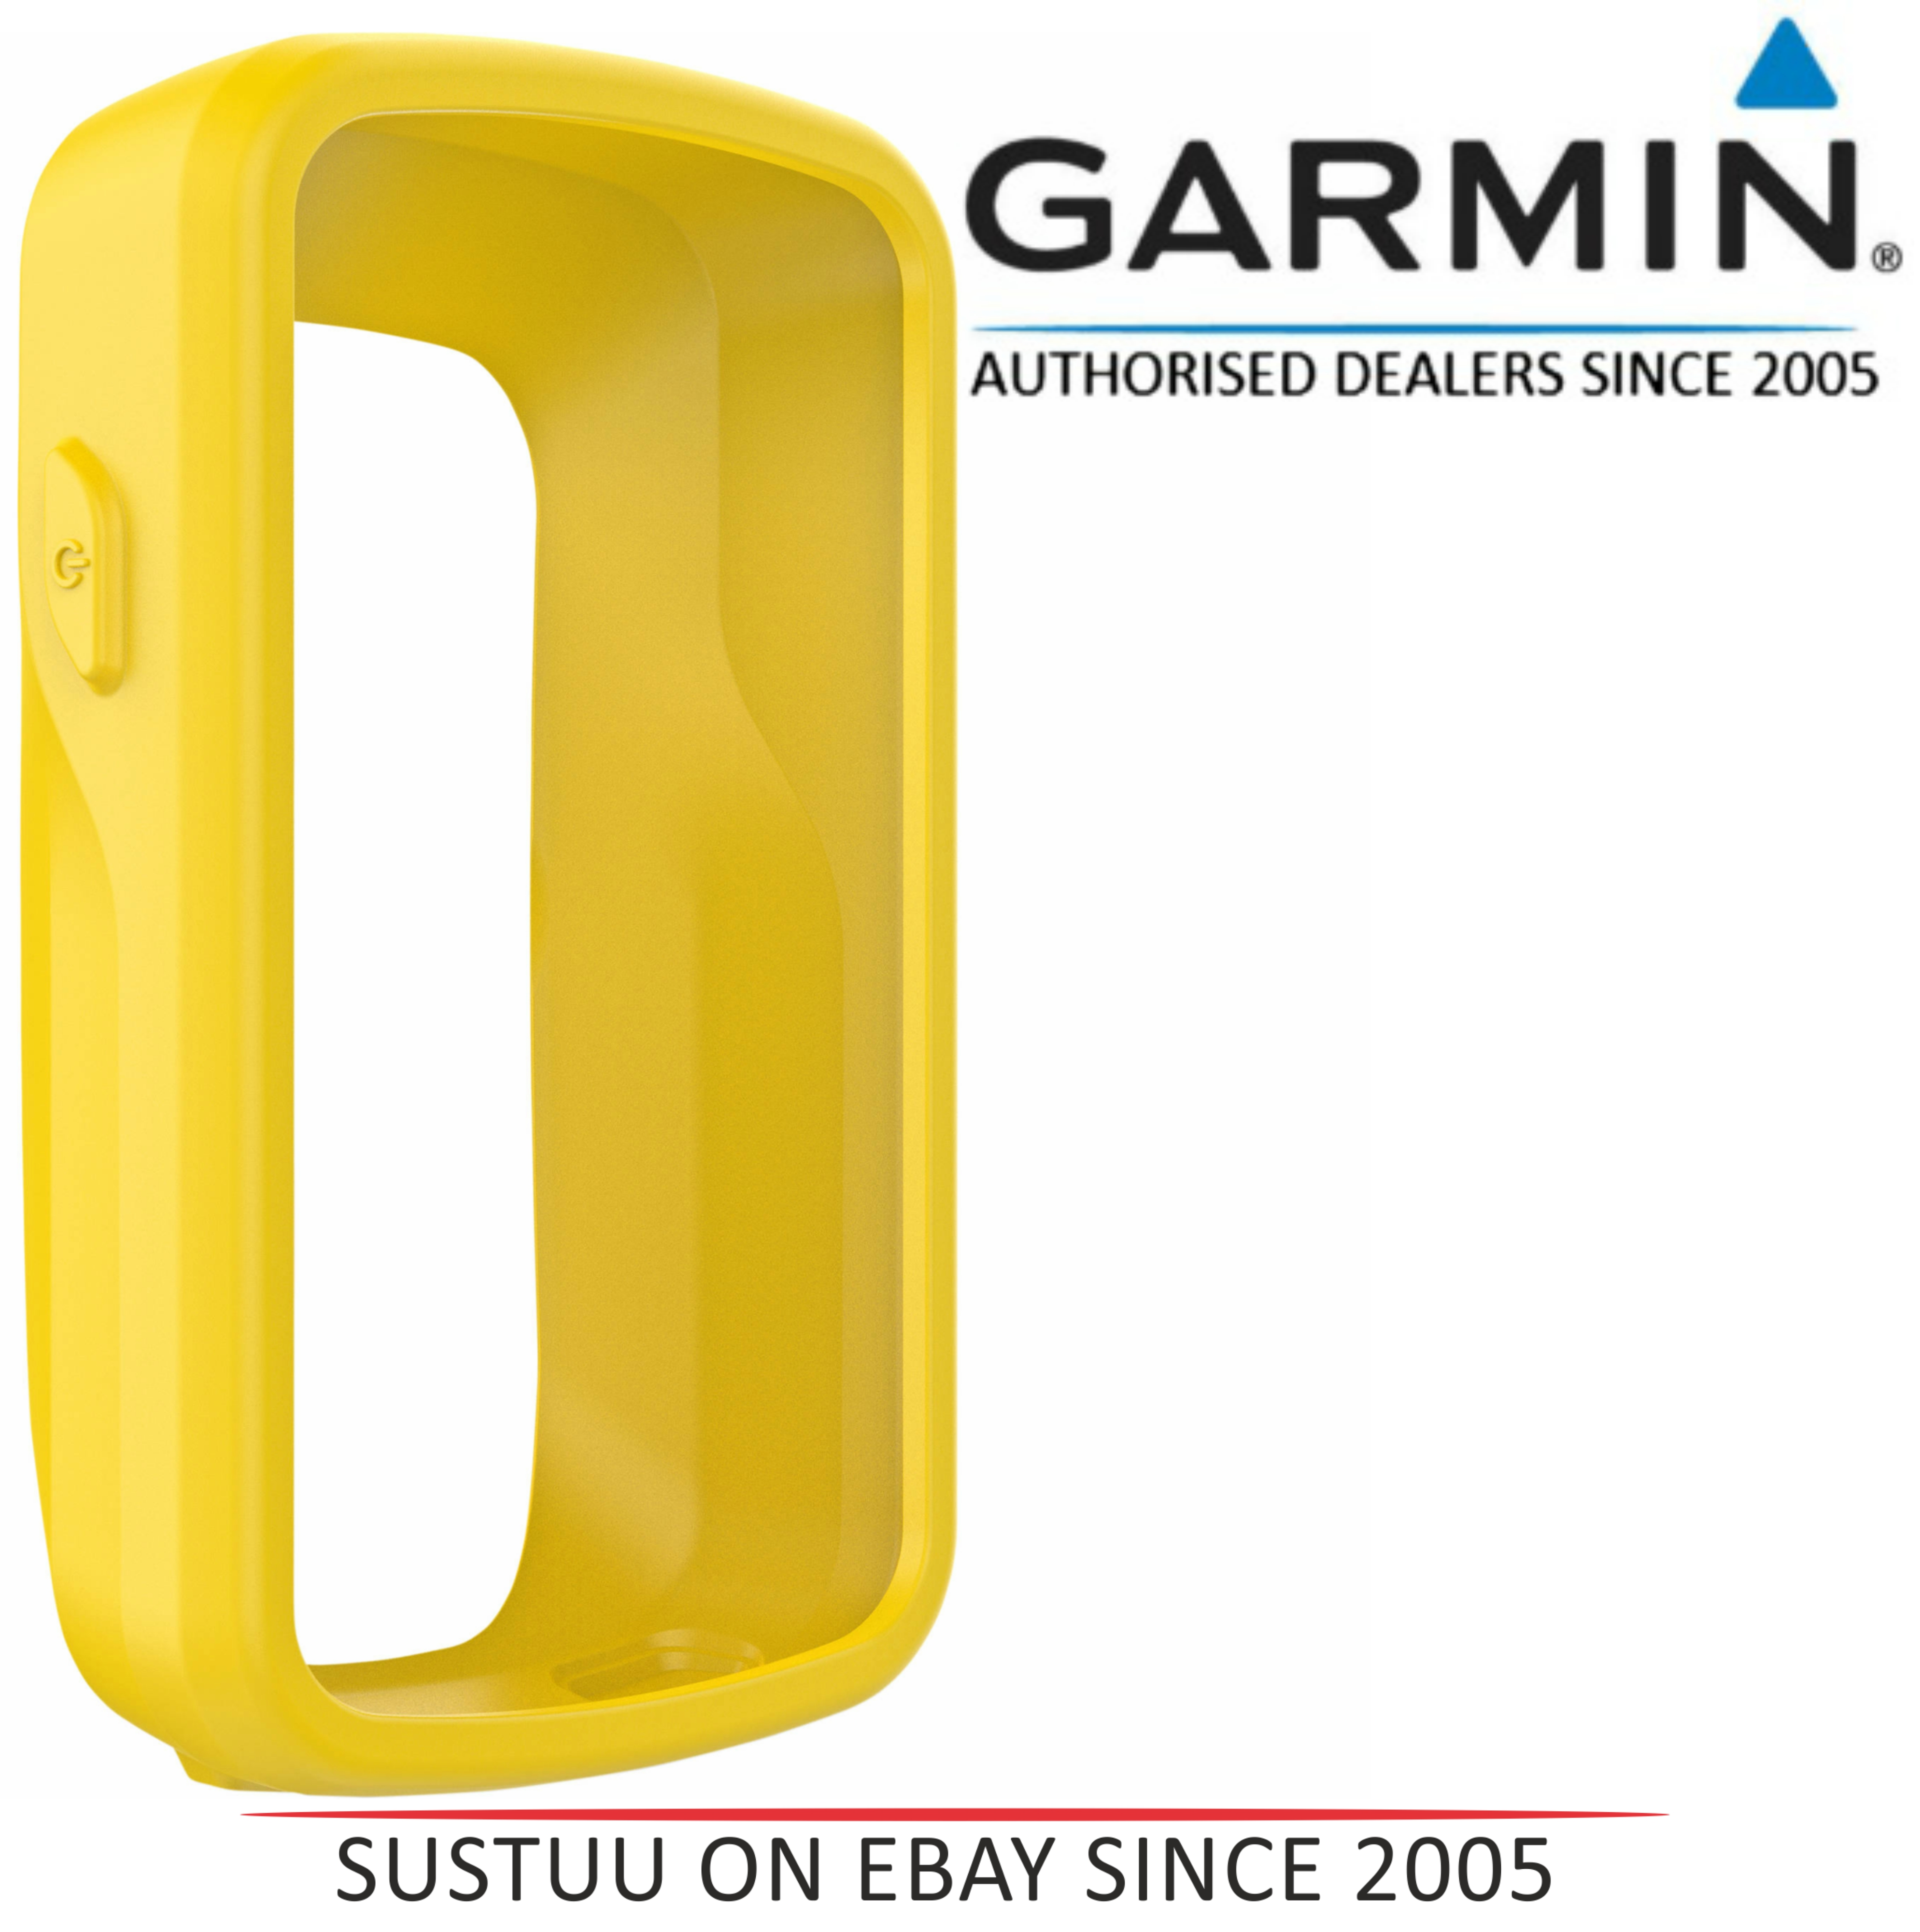 NEW Garmin 010-12484-04 Yellow Silicone Case For Edge/Explore 820 1yr WARRANTY